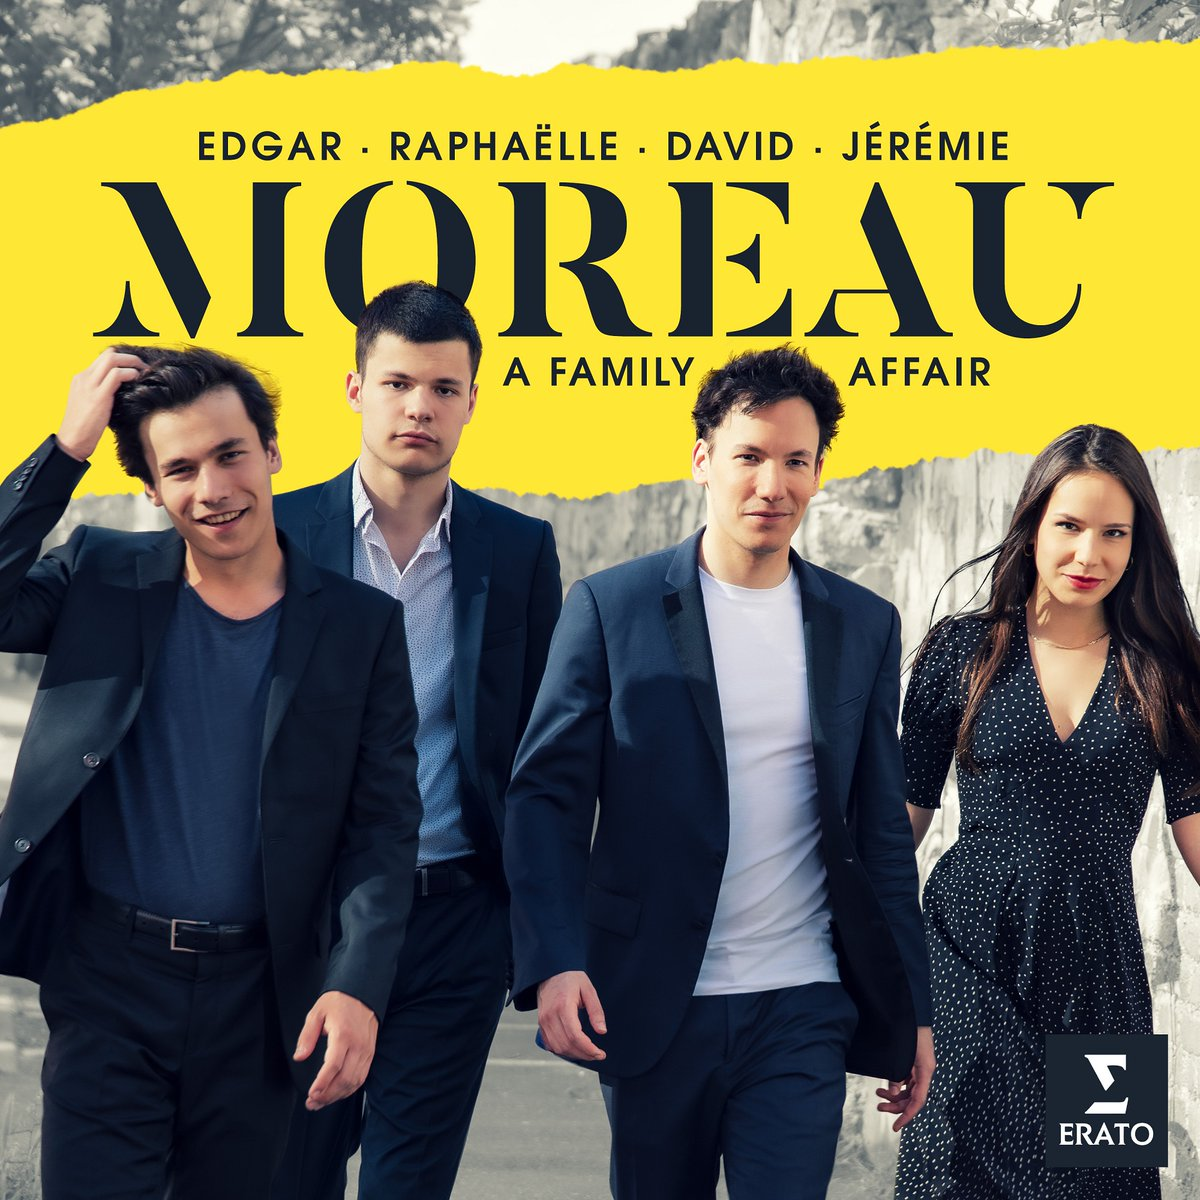 Talent runs in the family of young French cellist @EdgarMoreau: his next album introduces his three siblings, violinists Raphaëlle and David and pianist Jérémie, in a program of Dvořák and Korngold 🎻  Discover the first single now: https://t.co/cDqWHY2F14 https://t.co/Dvn3OtrcGg